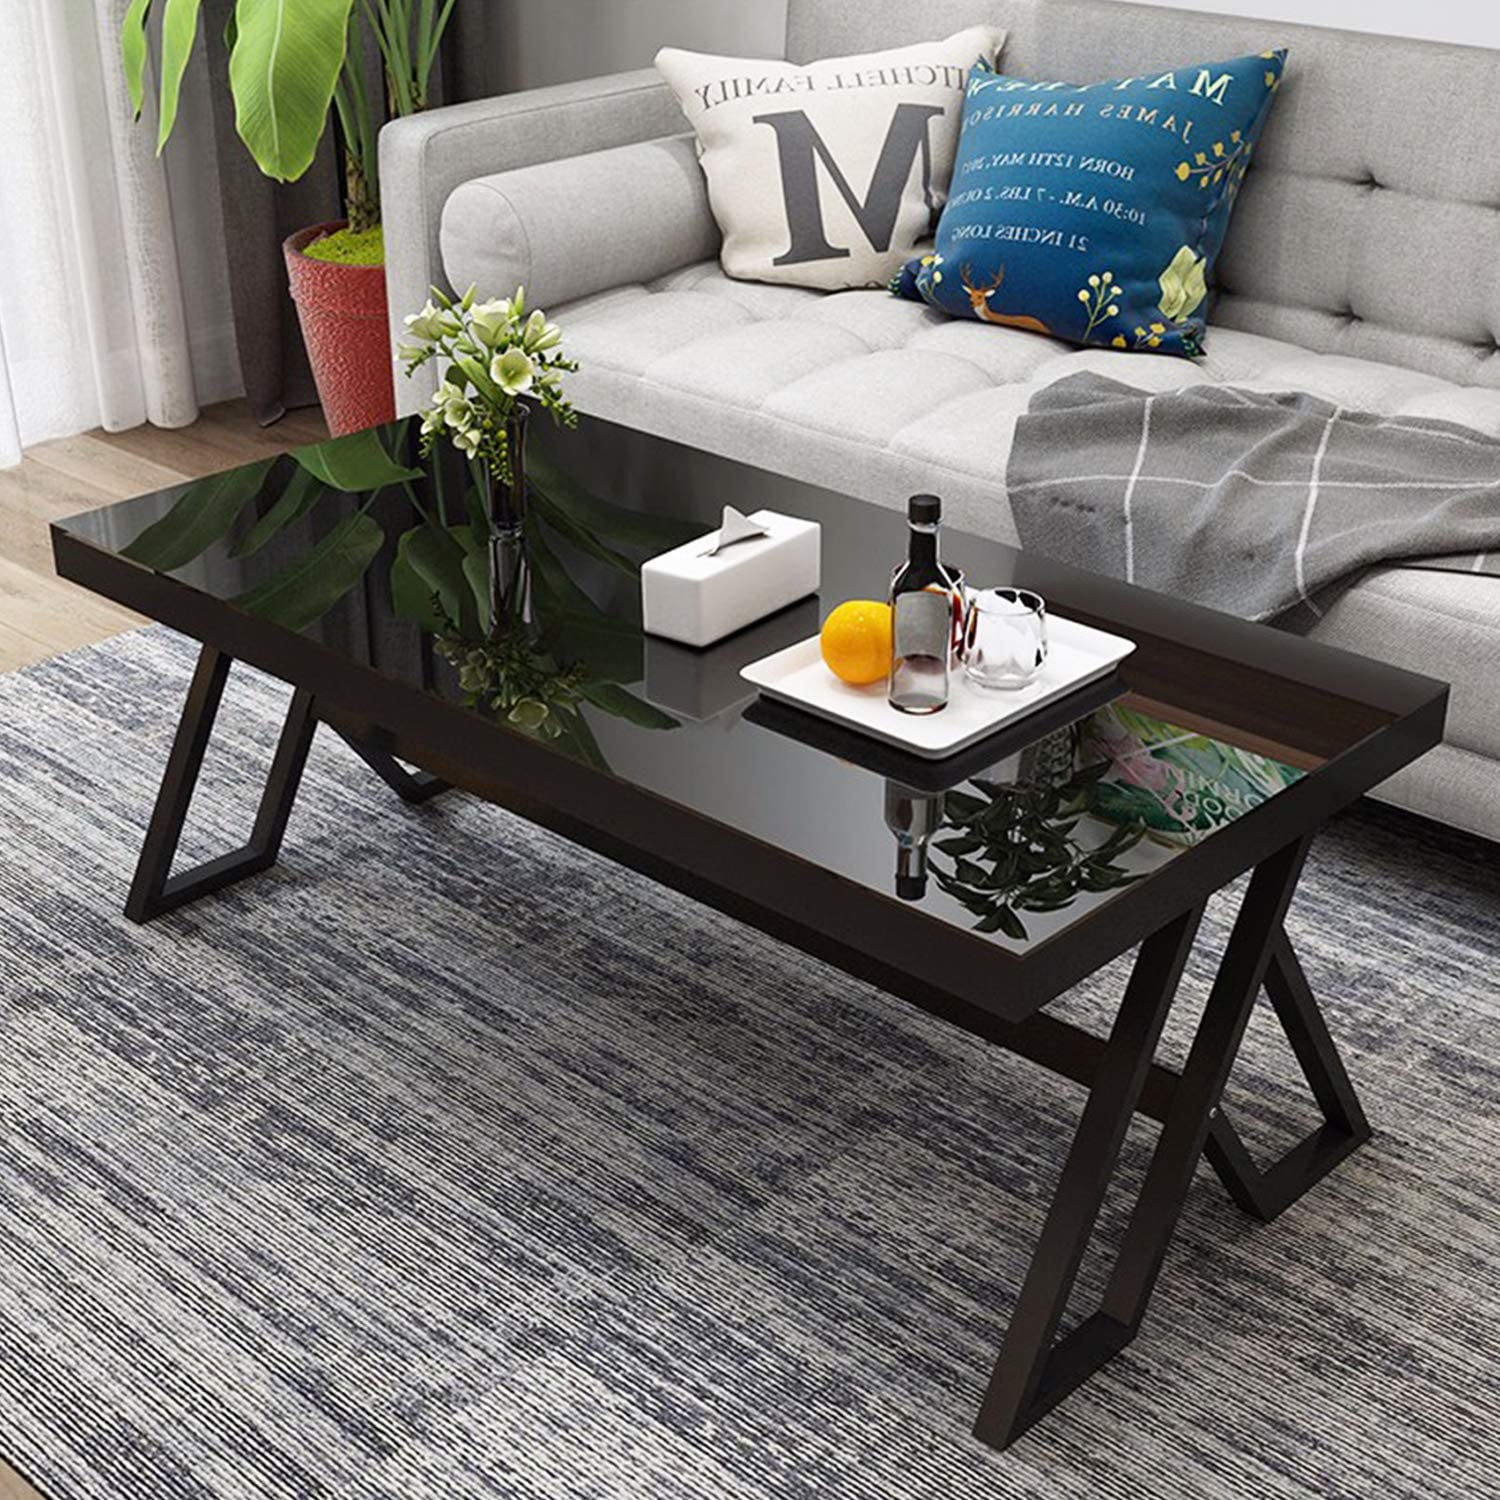 - Amazon.com: Jerry & Maggie - Tempered Glass Tea Table Coffee Table